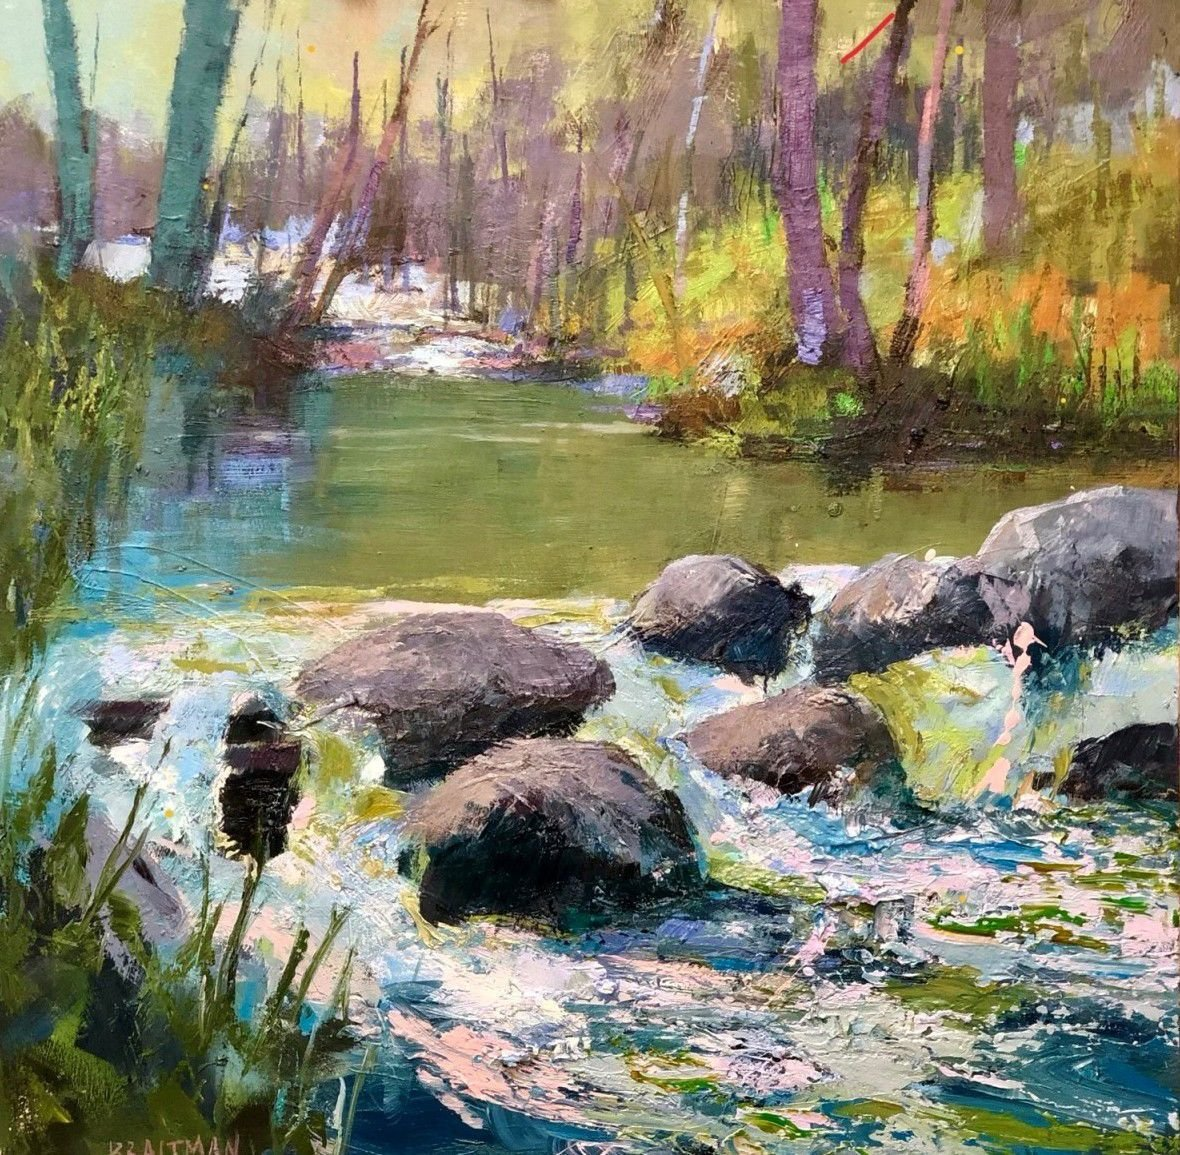 'Summer in the Mountains' by Andrew Braitman (40 x 40) on canvas in the Carlton Gallery